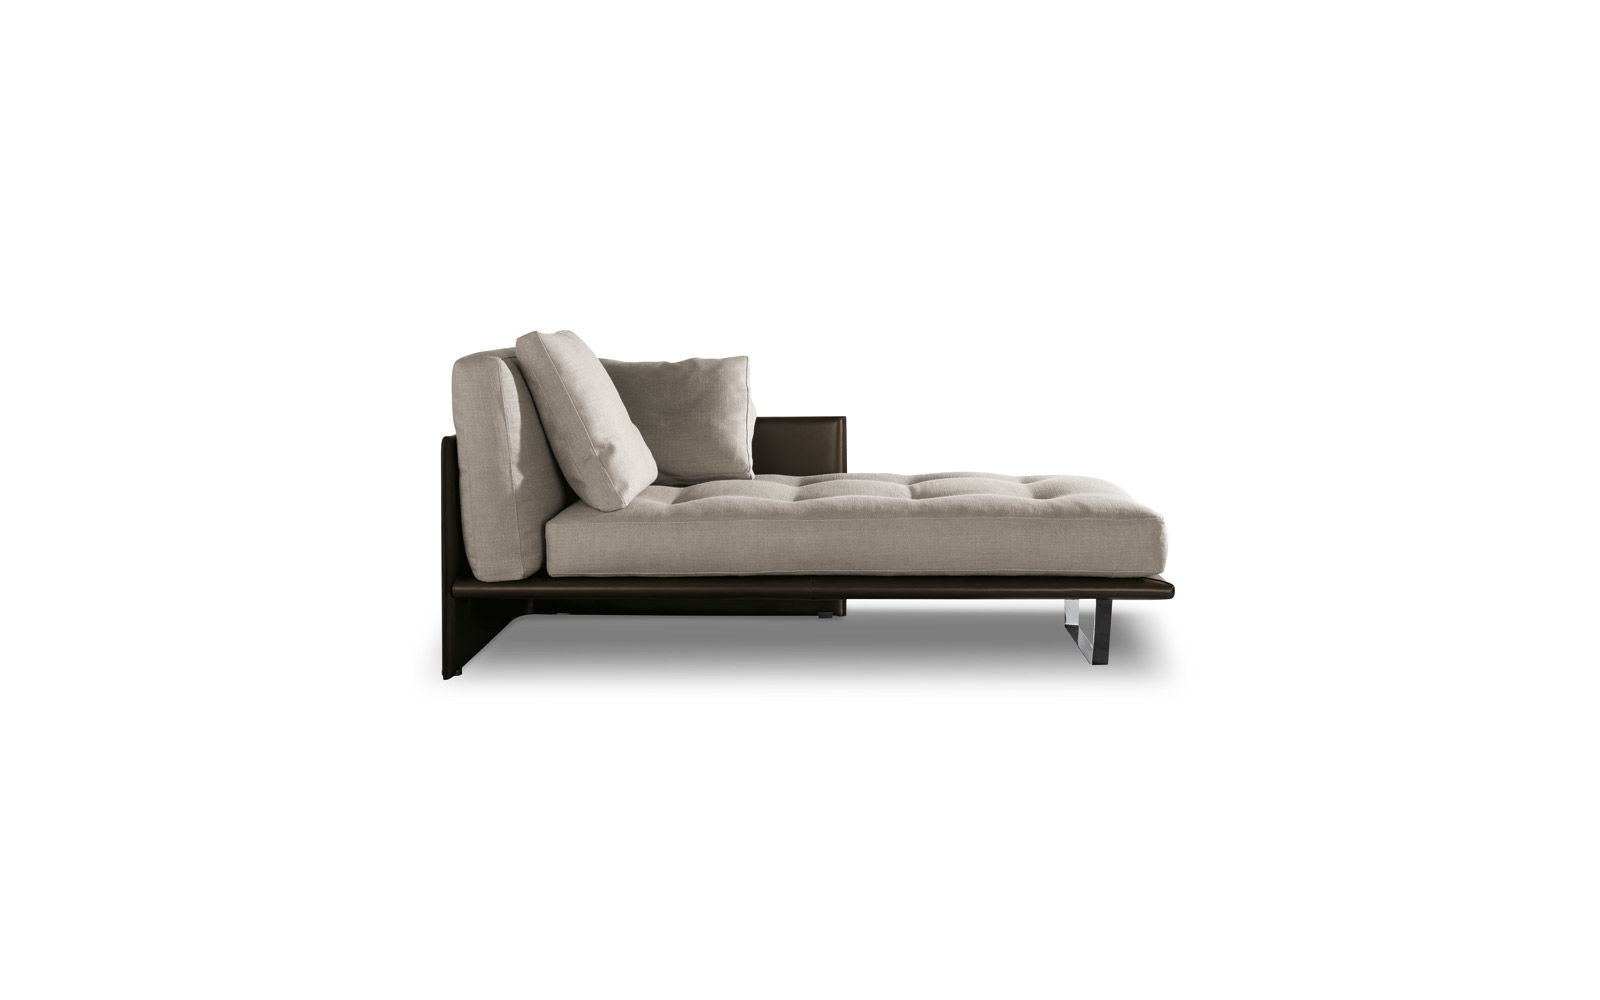 Luggage chaise longue for Chaise longue design piscine